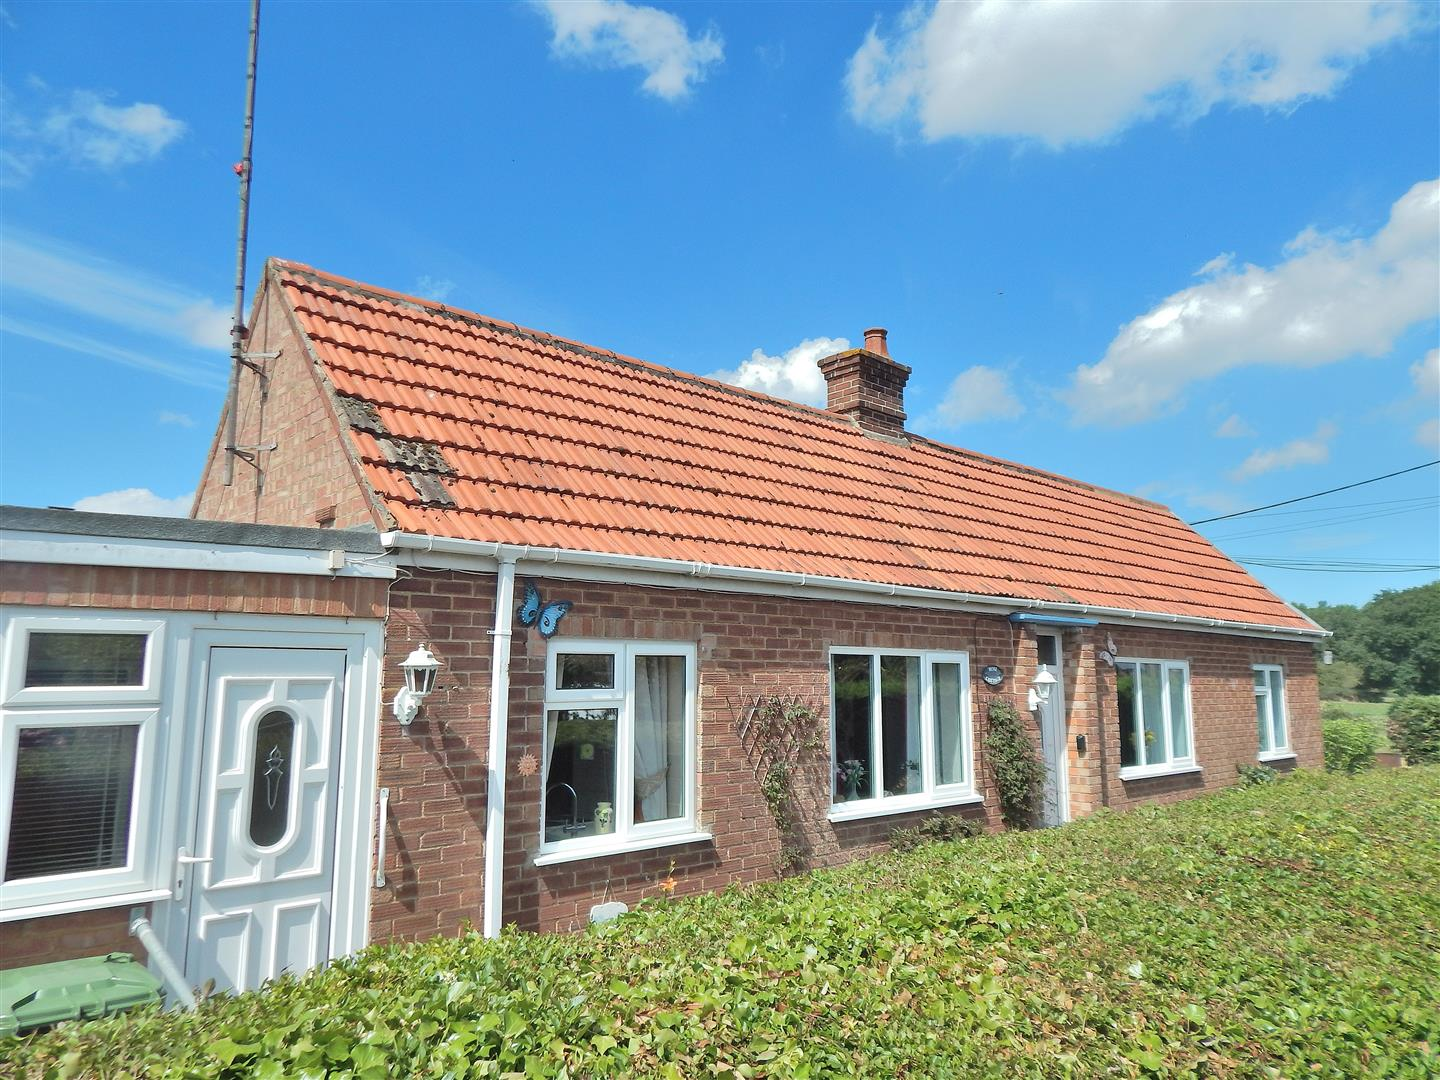 2 bed detached bungalow for sale in King's Lynn, PE31 6NJ  - Property Image 1